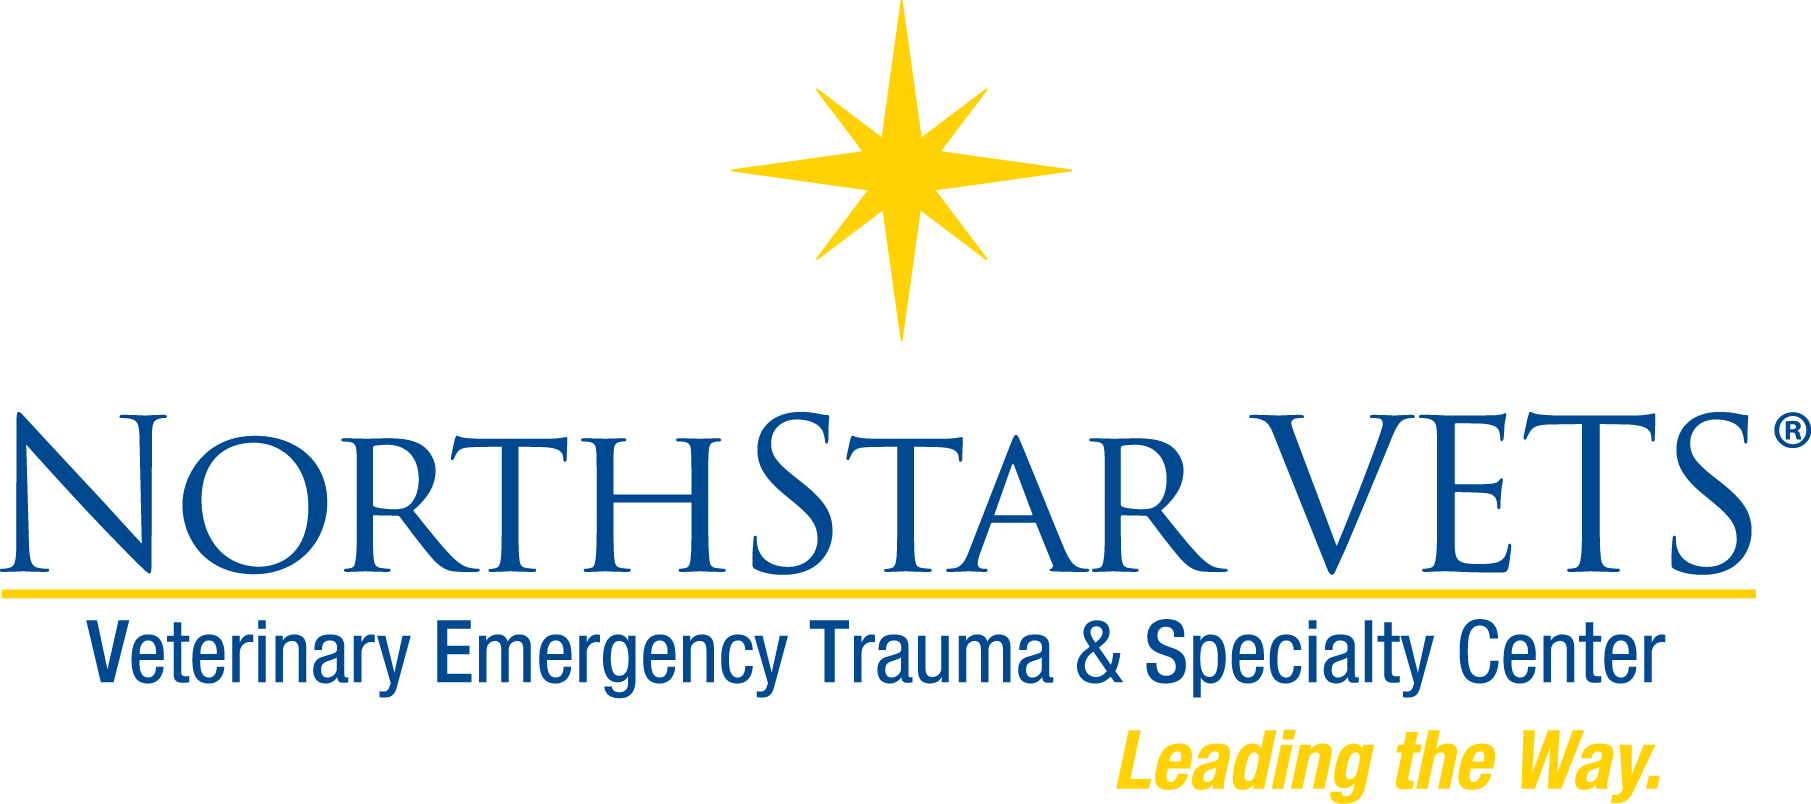 NorthStar VETS Home